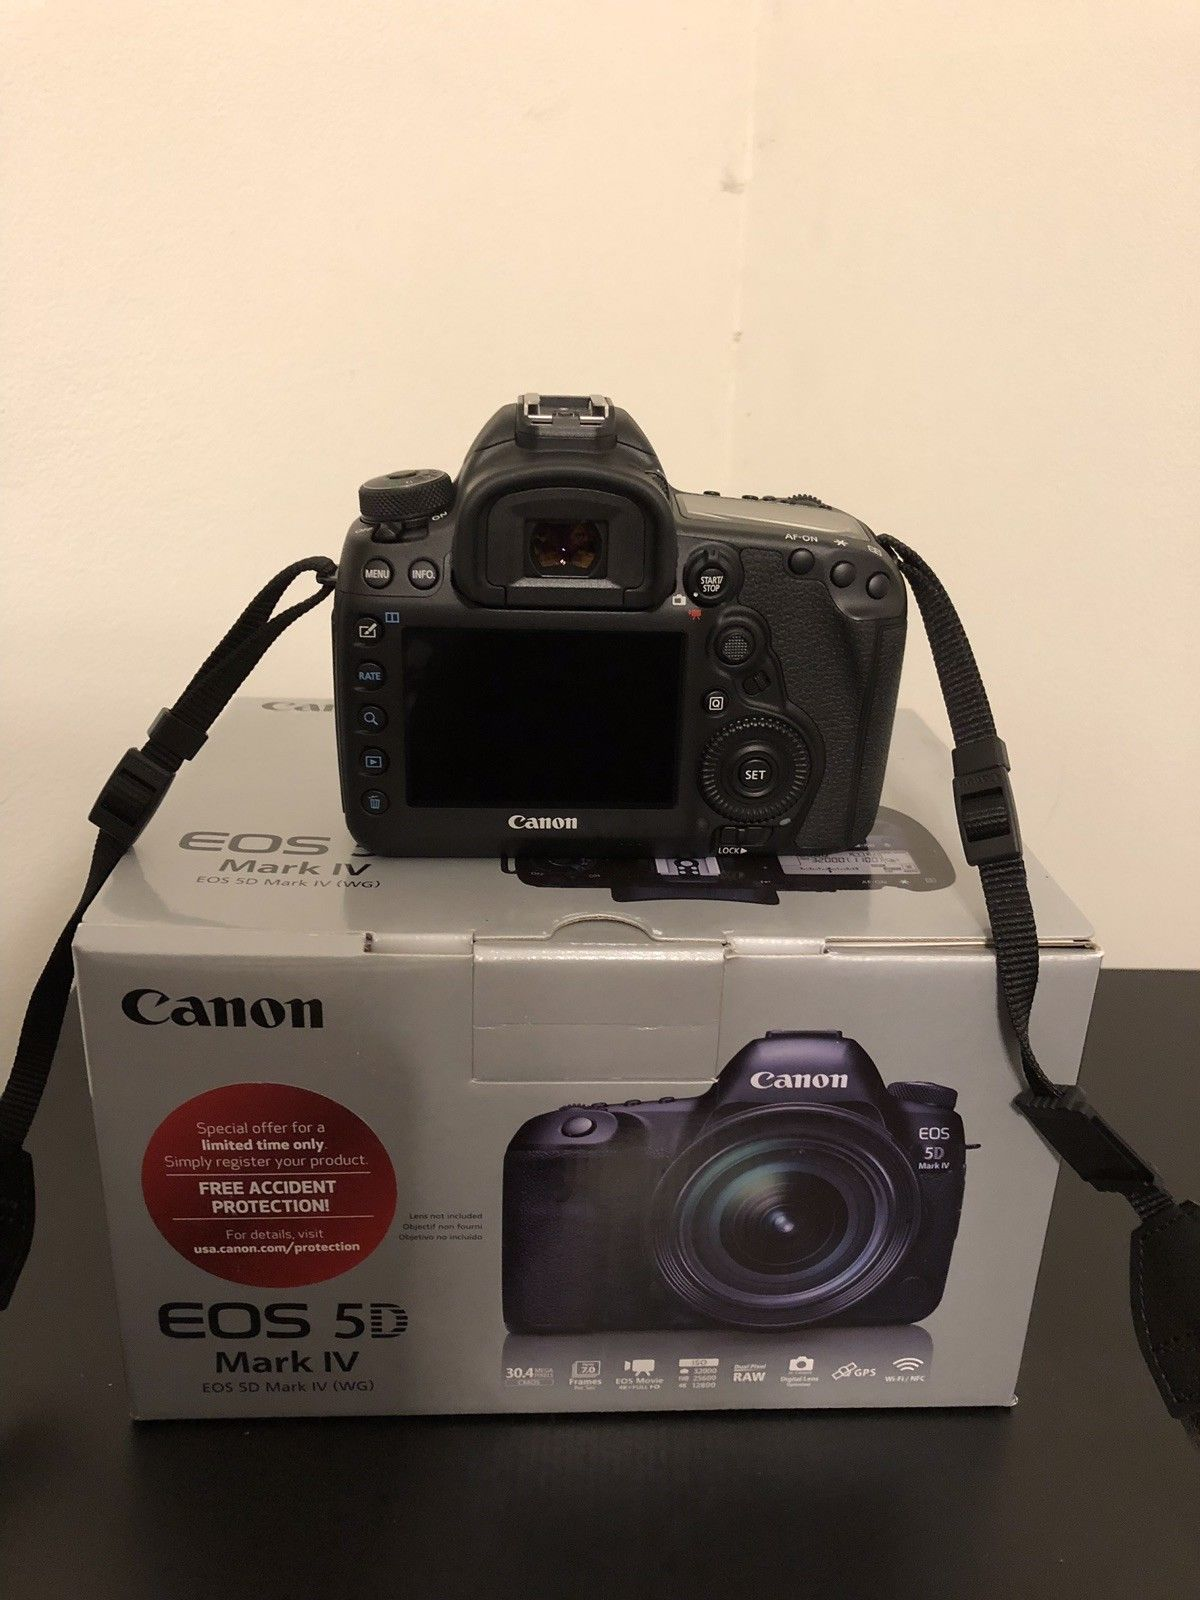 Canon EOS 5D Mark IV DSLR Camera photo